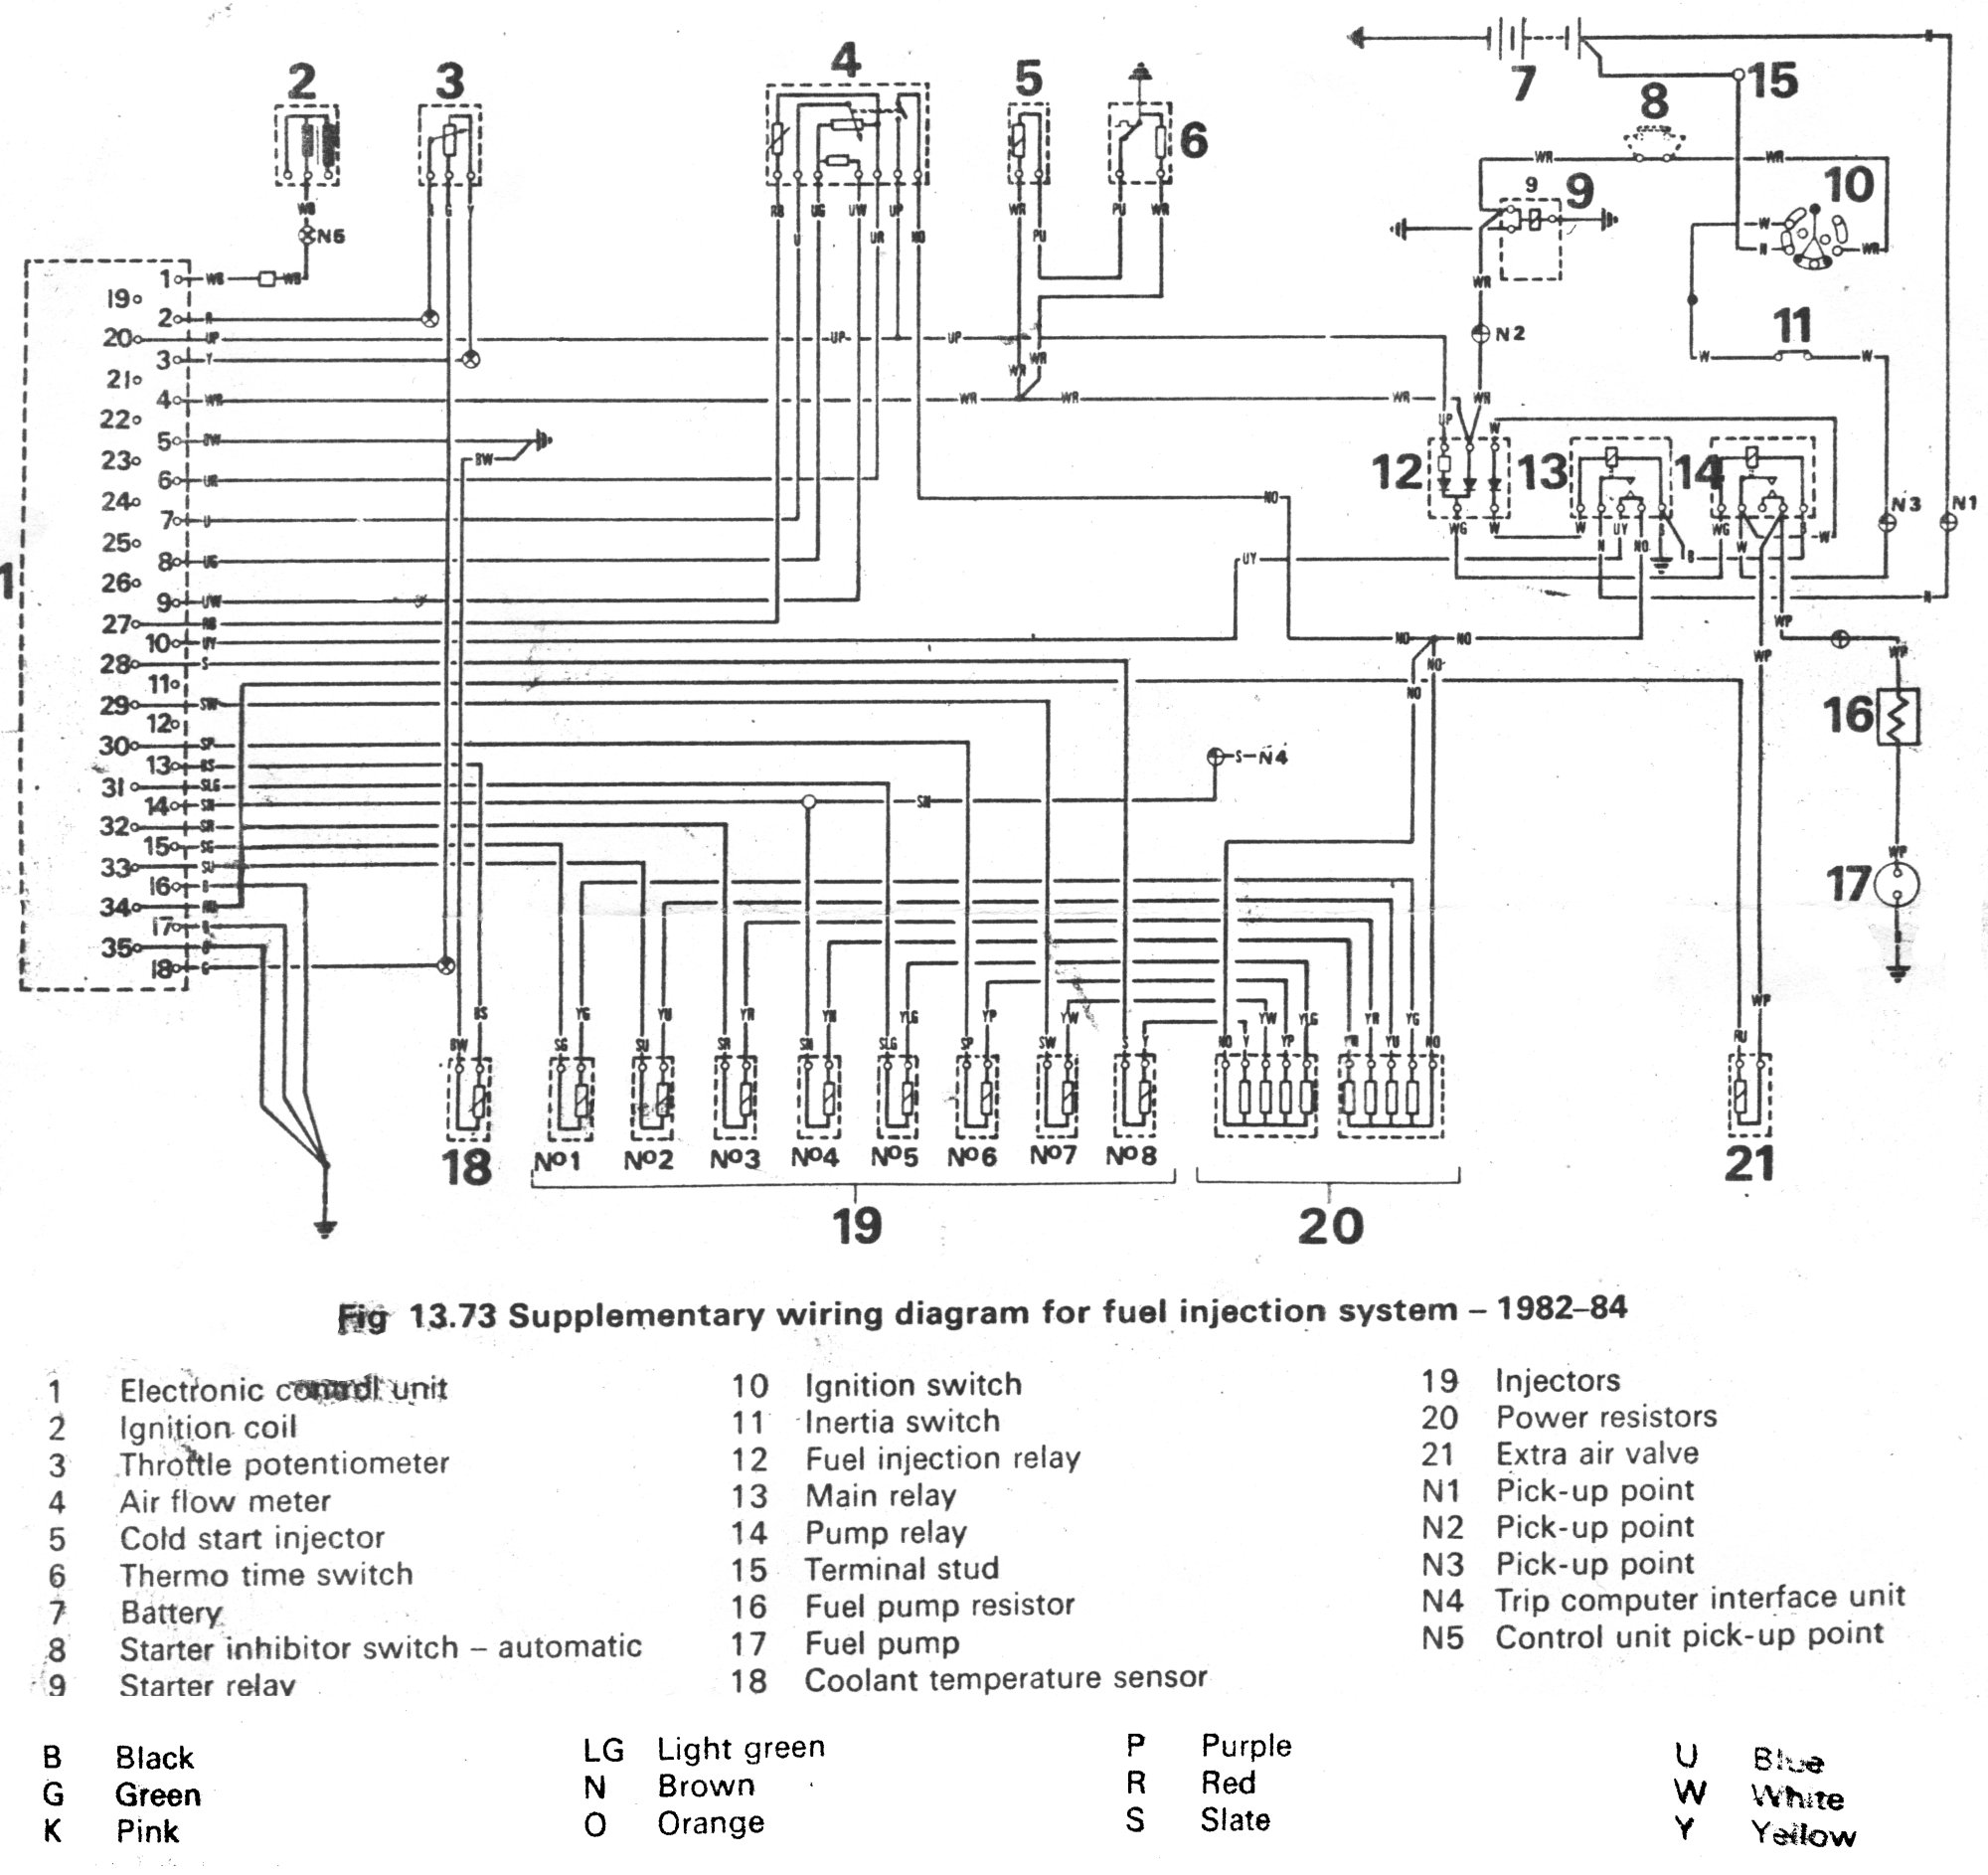 Triumph Stag Wiring Diagram - 17.14.danishfashion-mode.de • on triumph stag interior, triumph stag rear end, triumph stag dash, triumph stag engine swap, triumph stag motor, triumph stag engine conversion, triumph stag wheels,